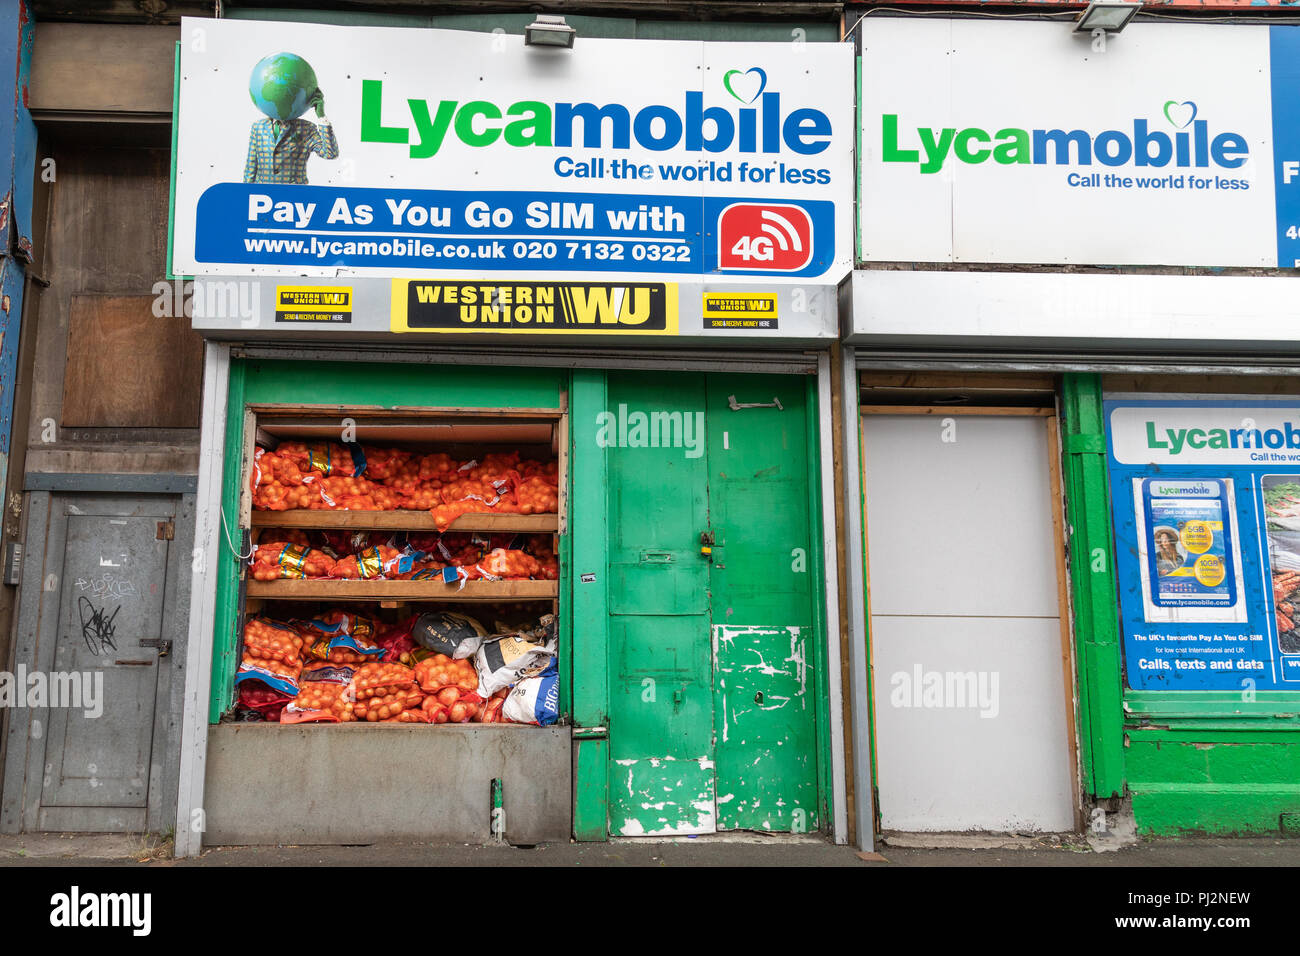 Sacks of onions on display at a Lyvamobile shop in Eglinton Street Glasgow - Stock Image